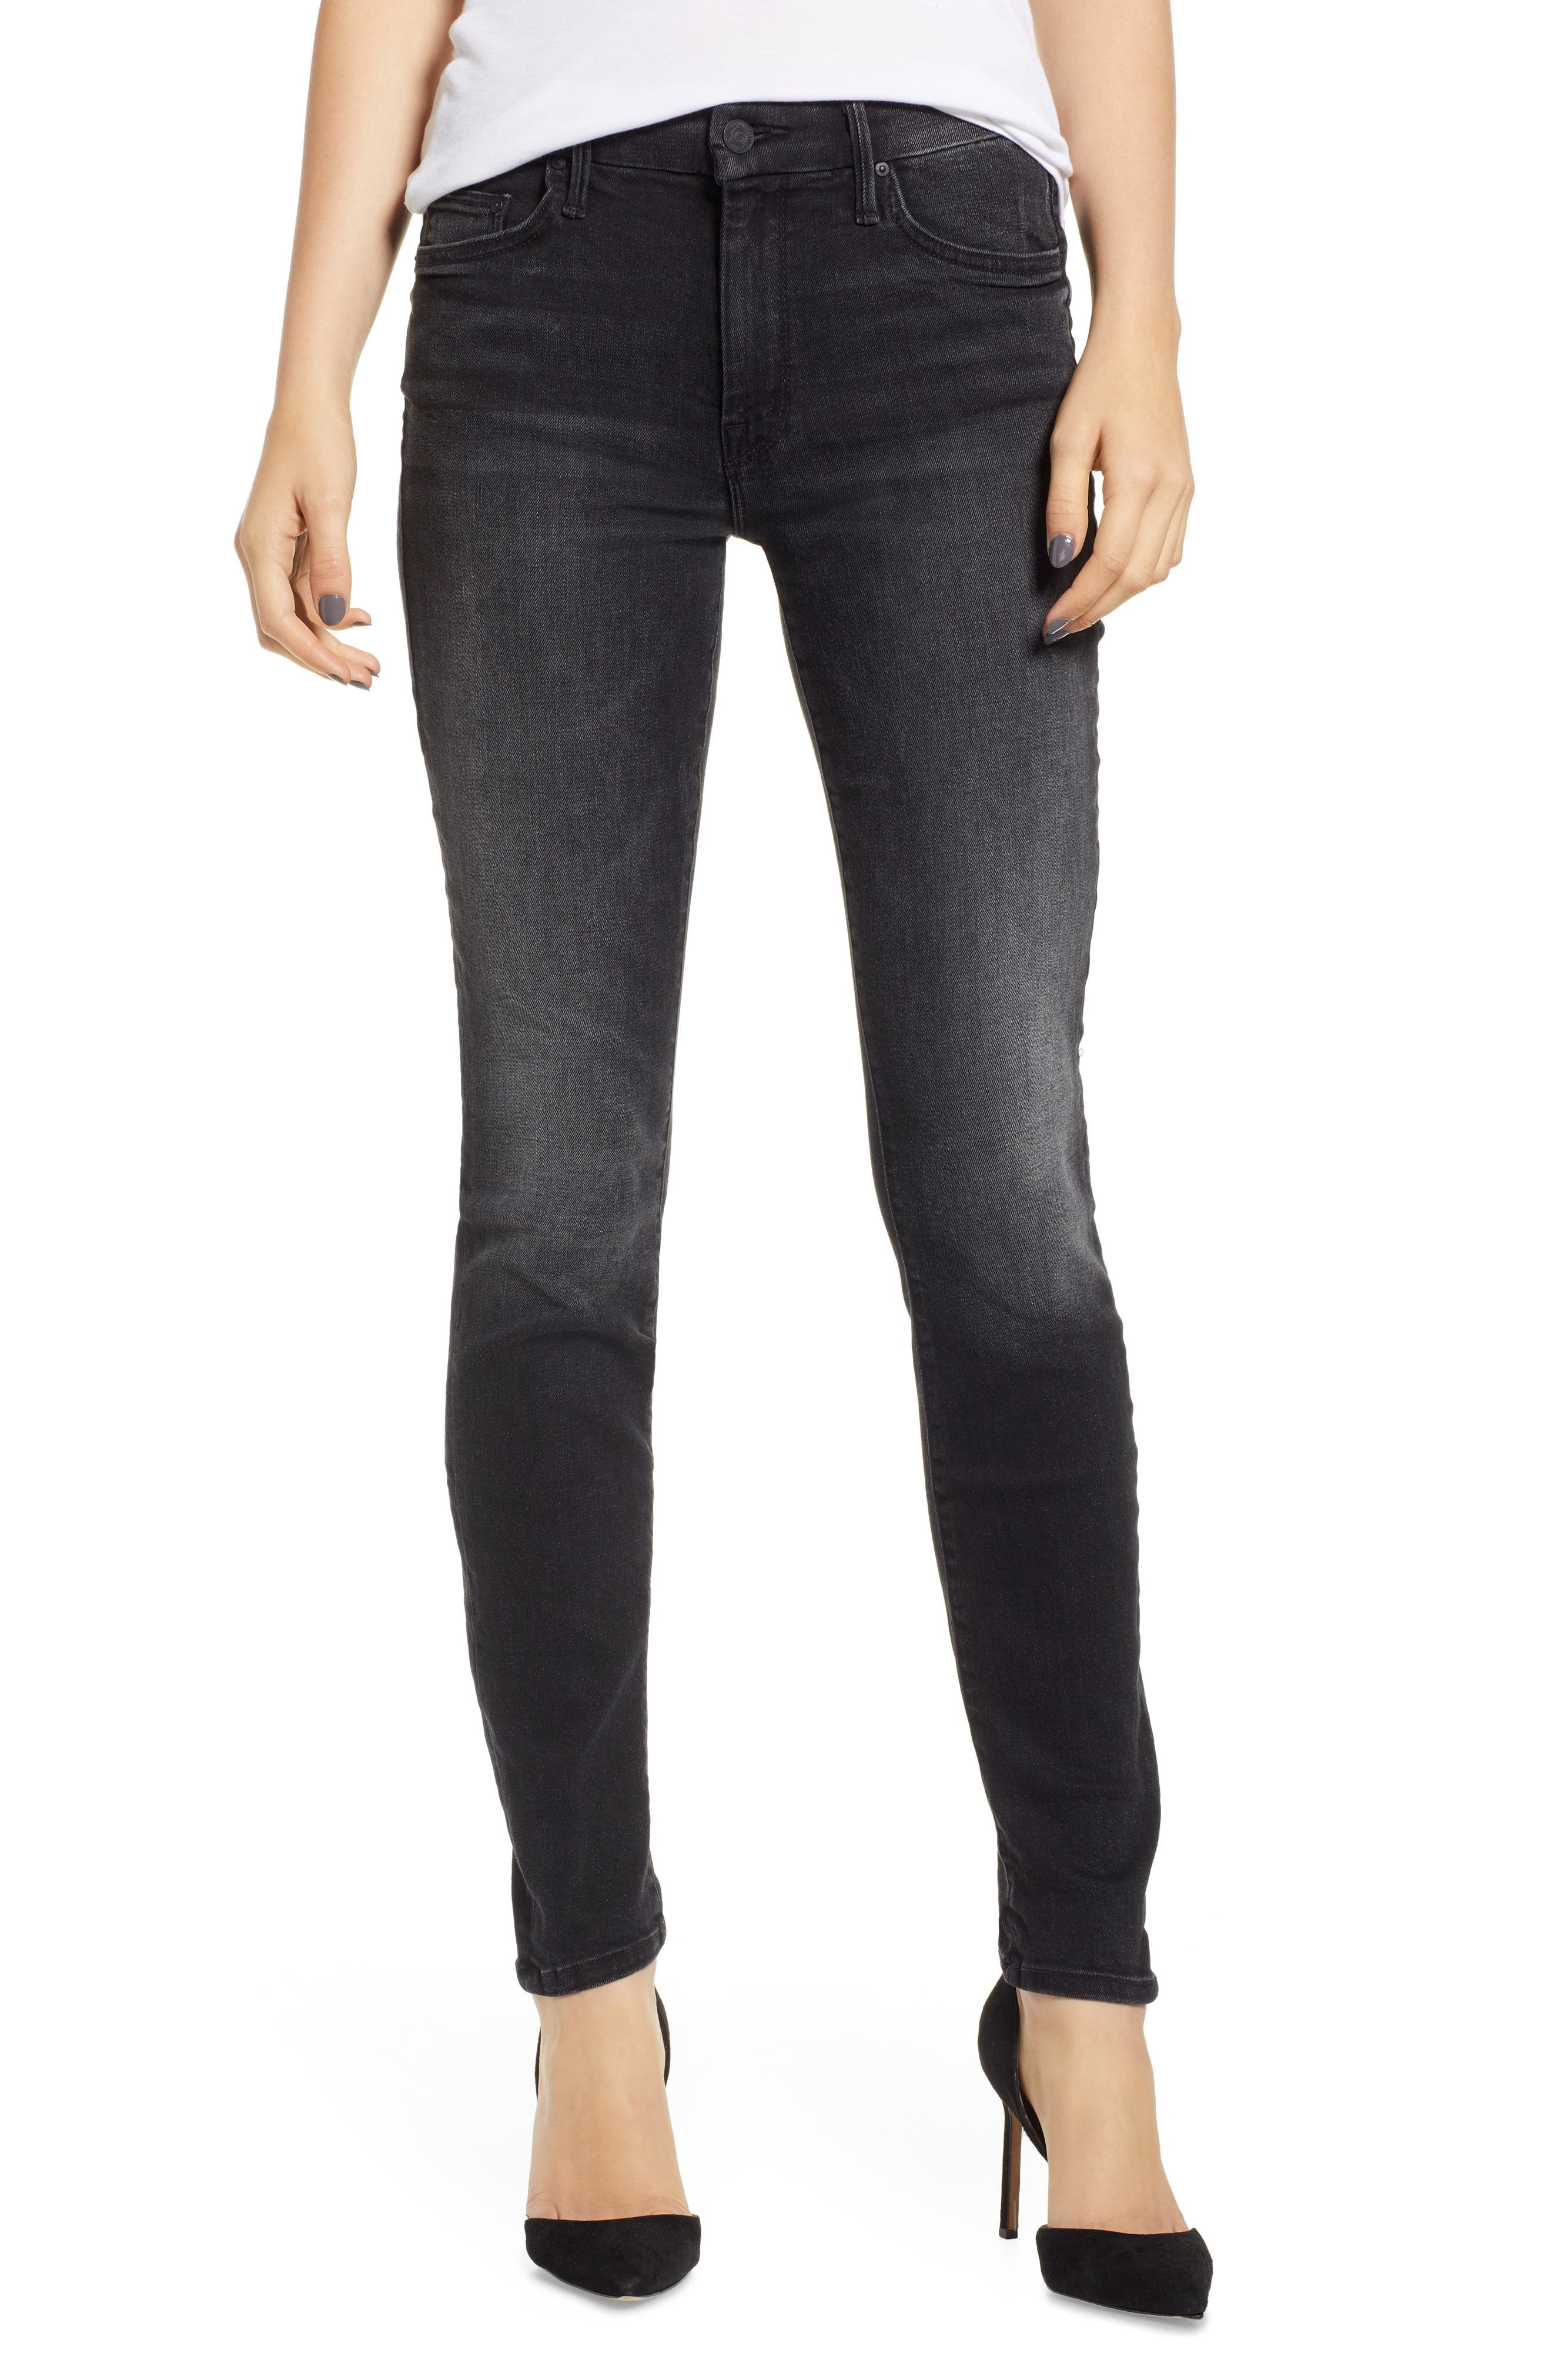 MOTHER, The Looker Mid Rise Skinny Jeans, Main thumbnail 1, color, 001